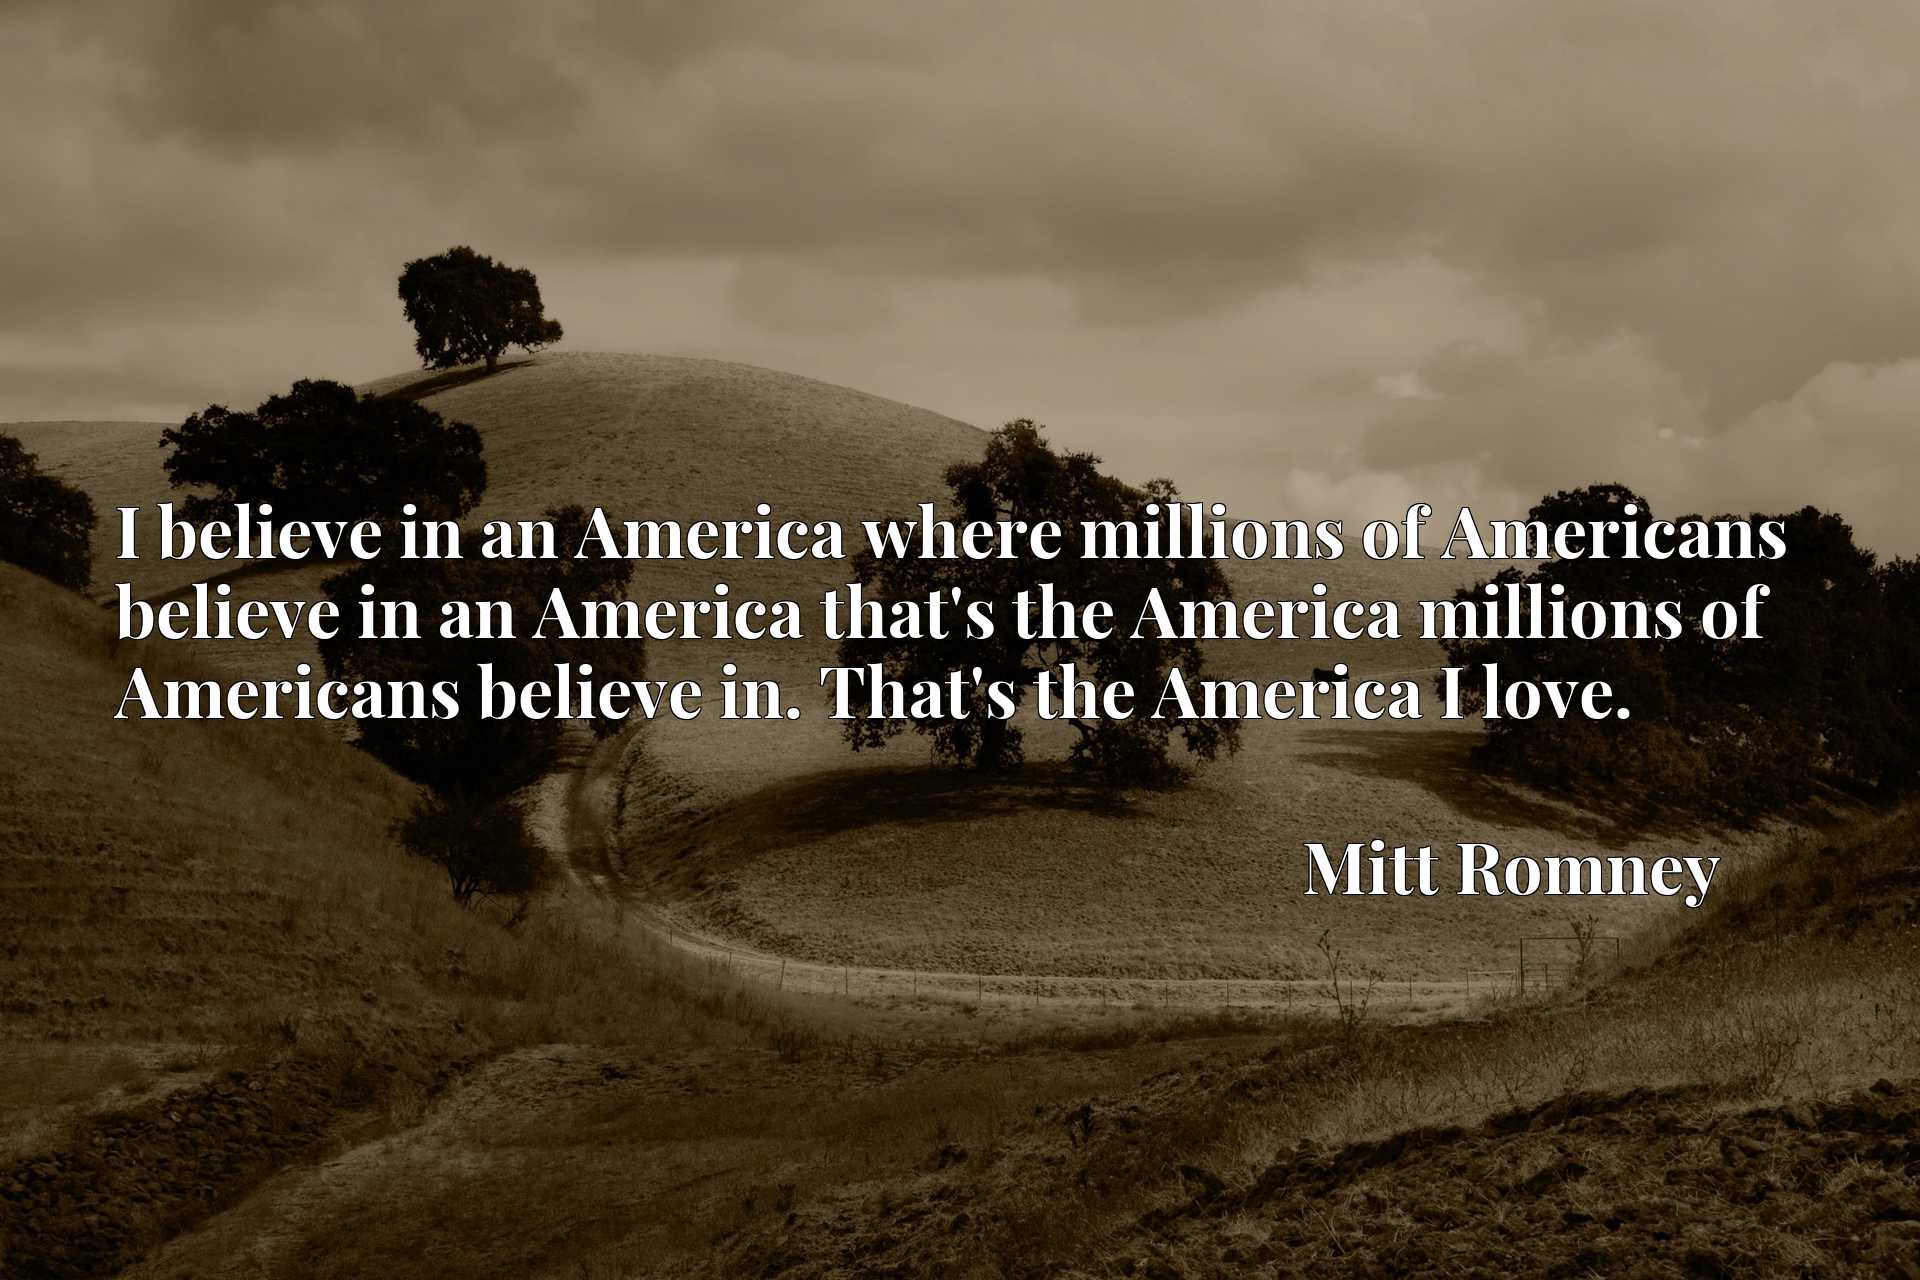 I believe in an America where millions of Americans believe in an America that's the America millions of Americans believe in. That's the America I love.